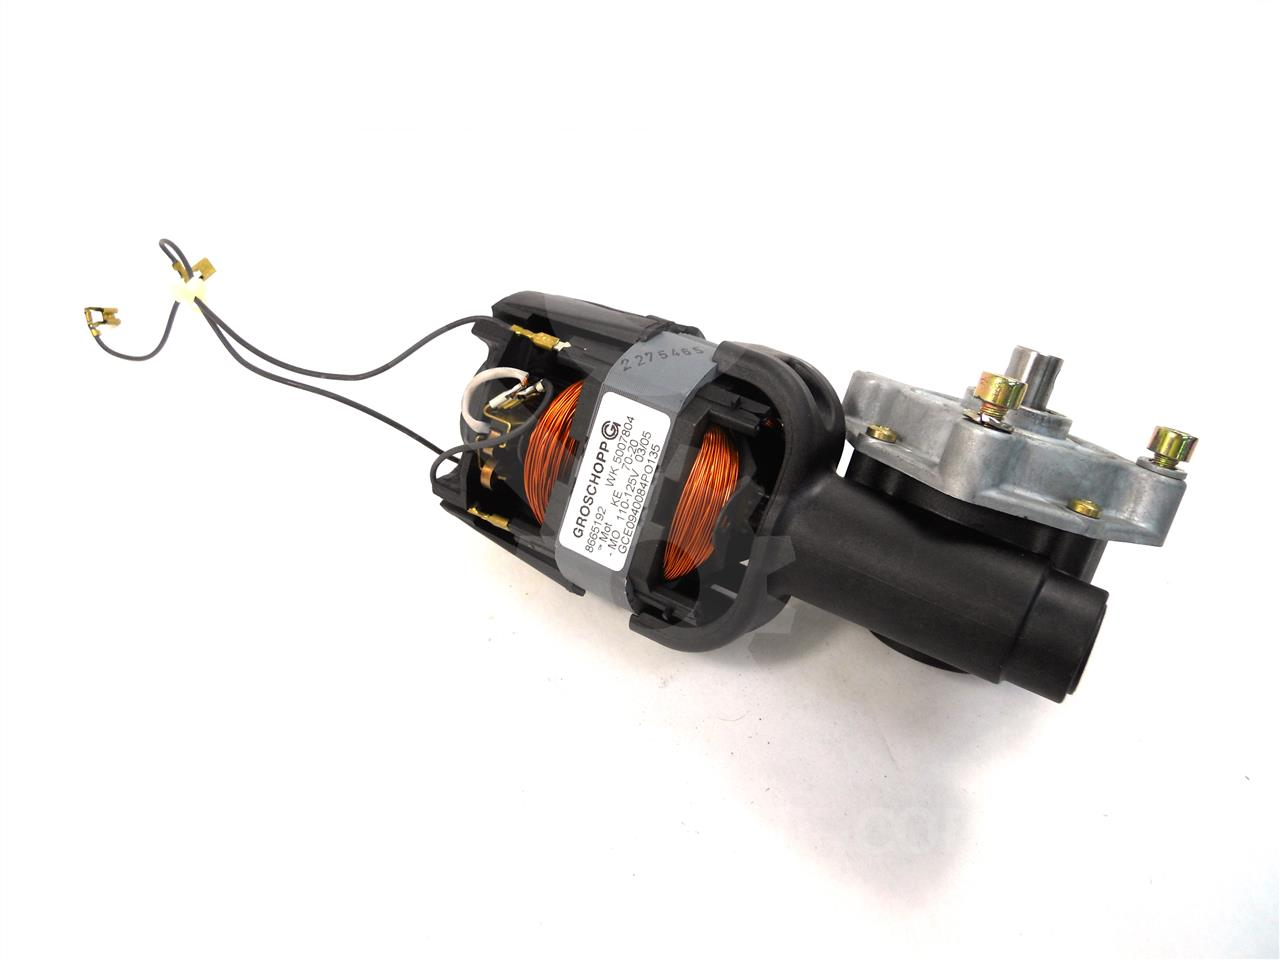 GCE0940084P0135 ABB 120VAC/DC CHARGE MOTOR NEW FOR ADVAC MODEL 3